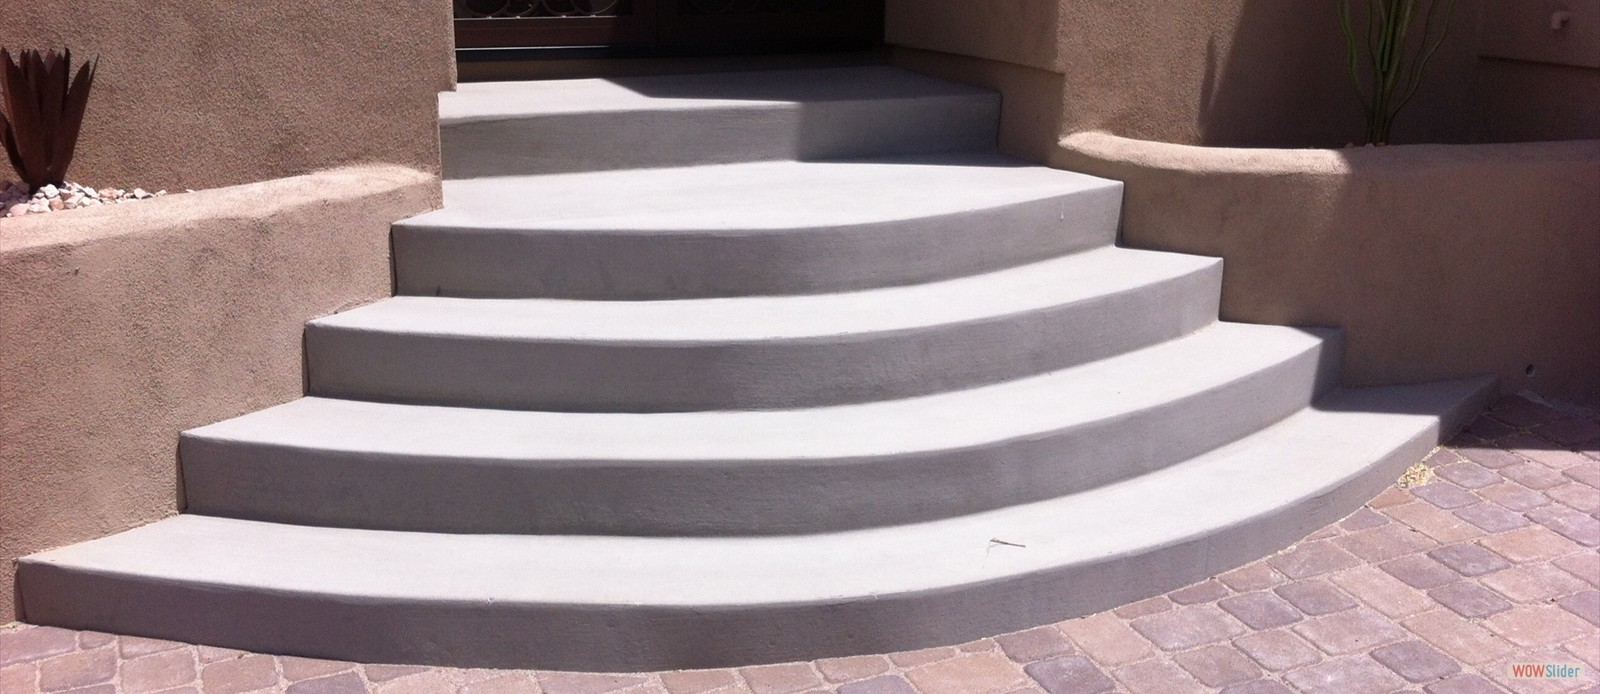 Rounded Stairs Before